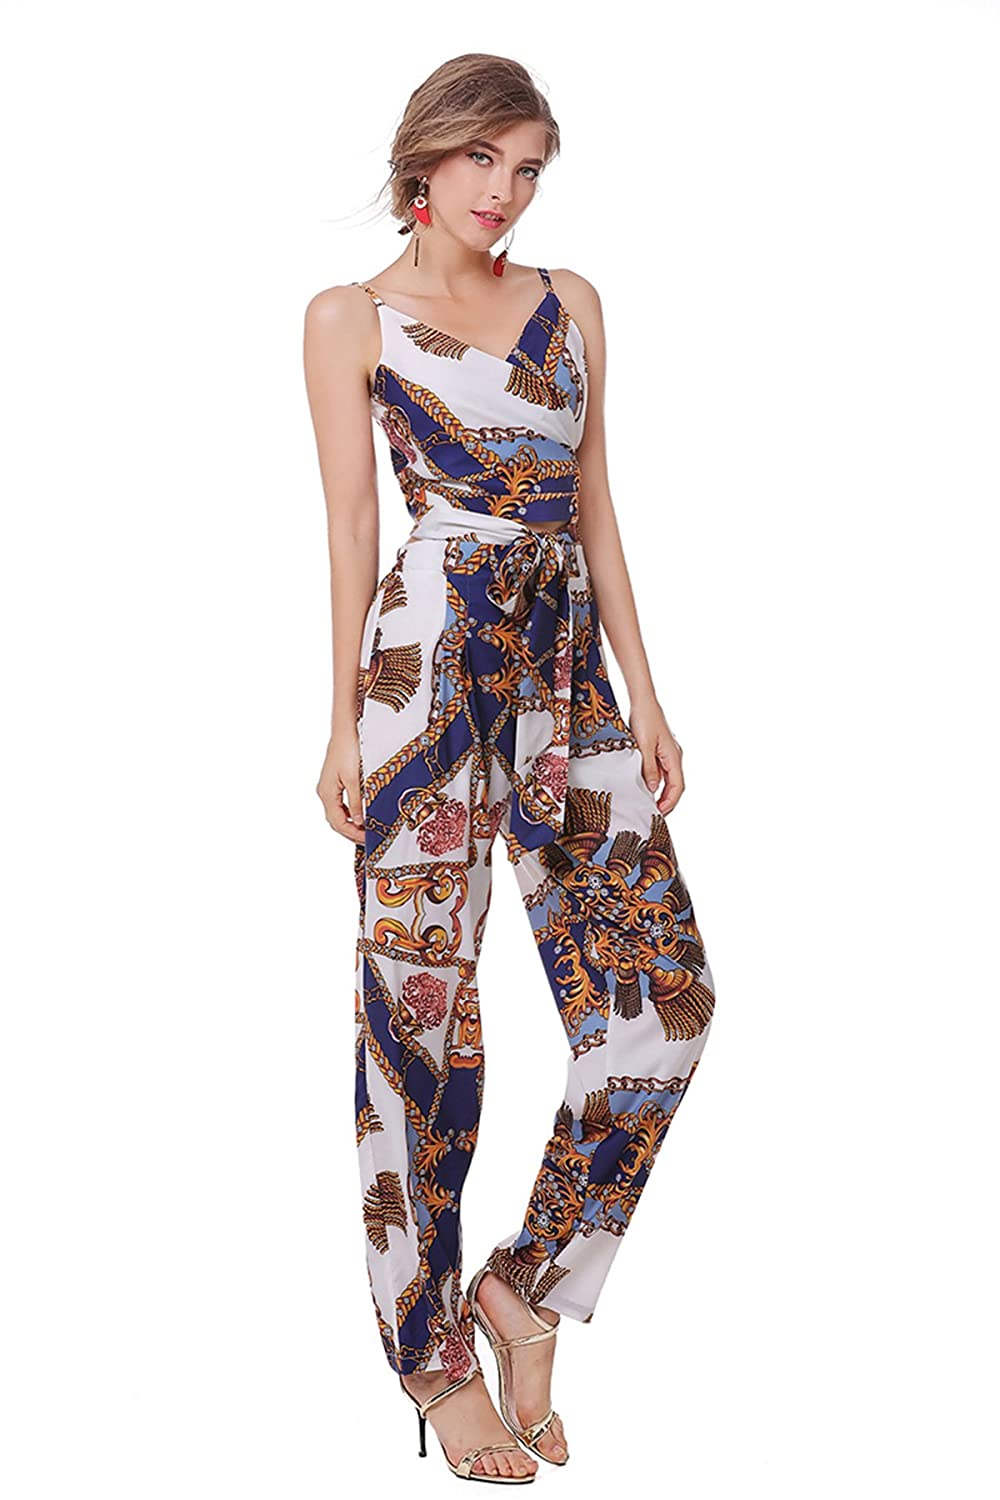 0bac4bb6313f Amazon.com  Women s Vintage Print Two Piece Set Sexy Crop Top and Wide Leg  Jumpsuit  Clothing